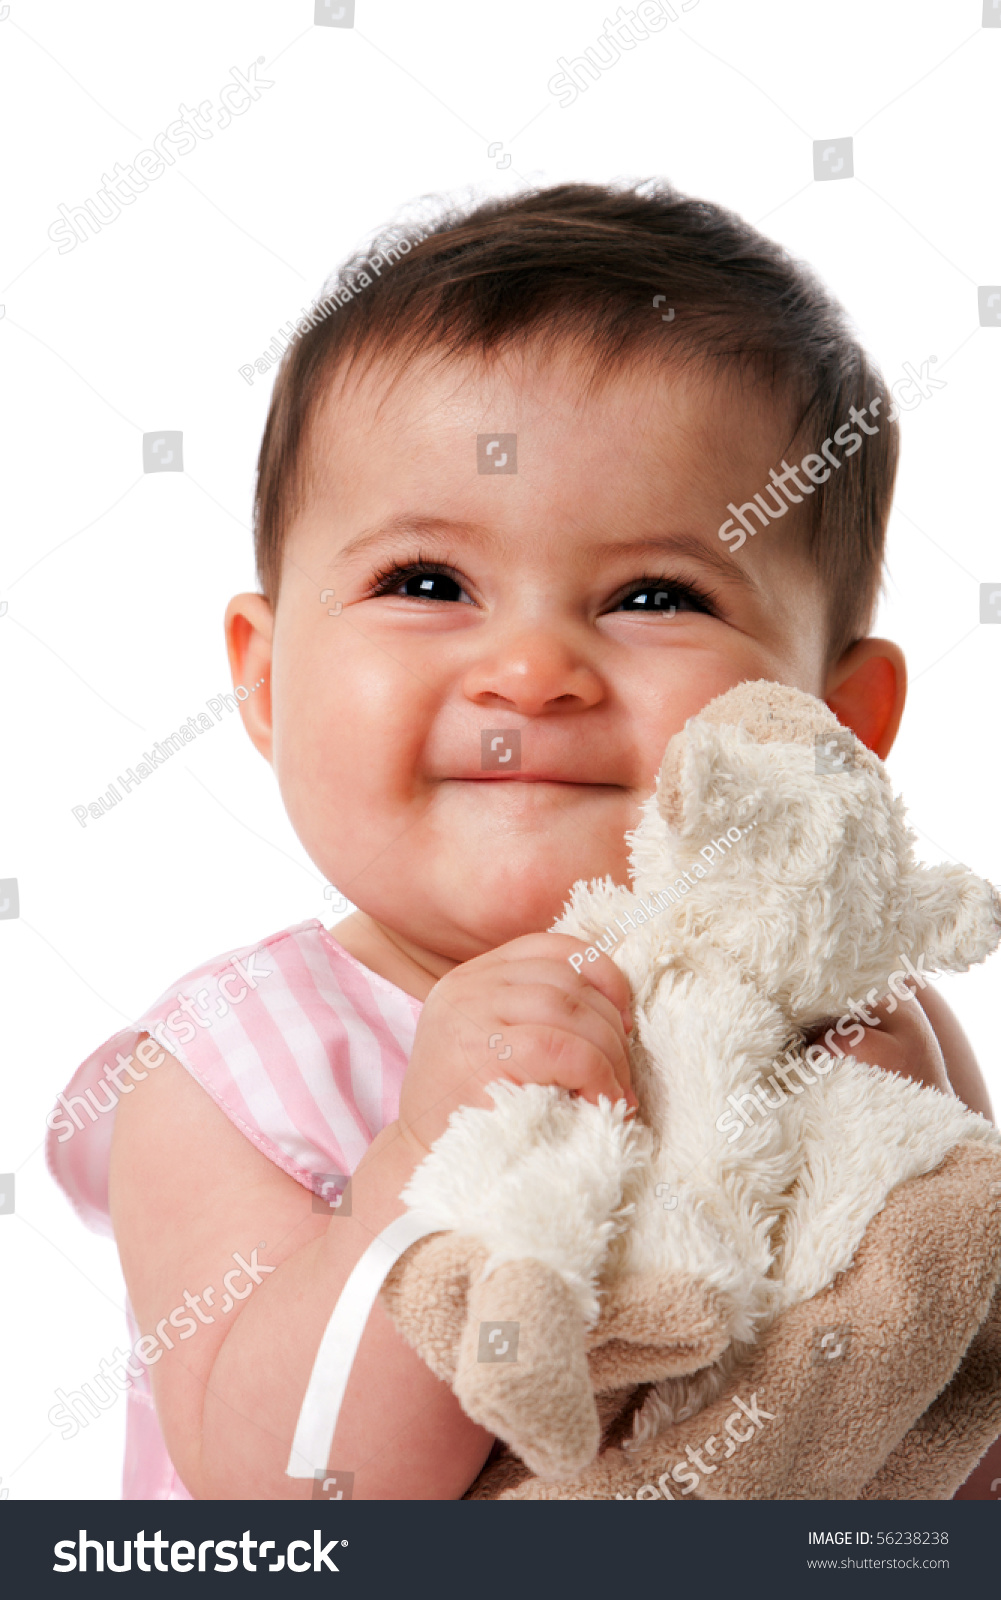 Cute Baby Smile HD Wallpapers Pics Download | HD Walls |Cute Smiling Baby Faces